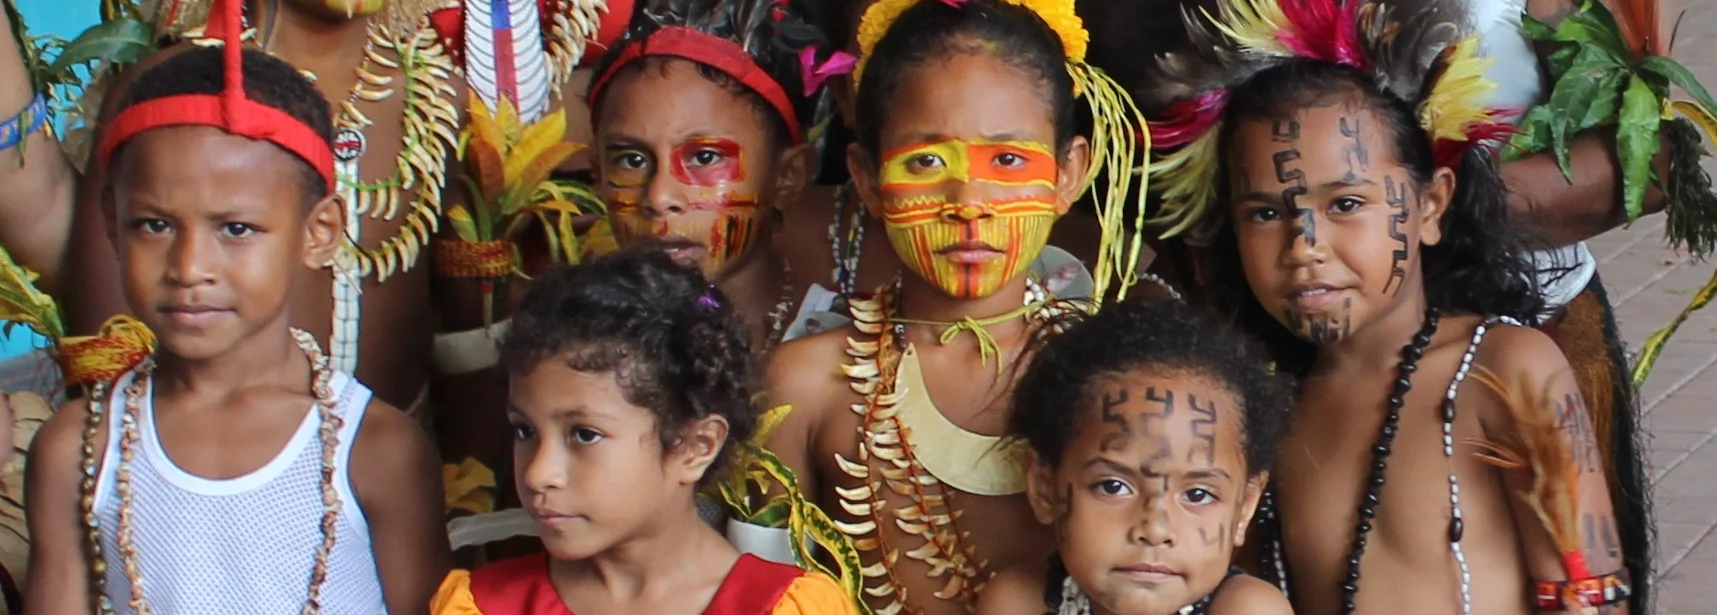 A group of children in their cultural heritage.